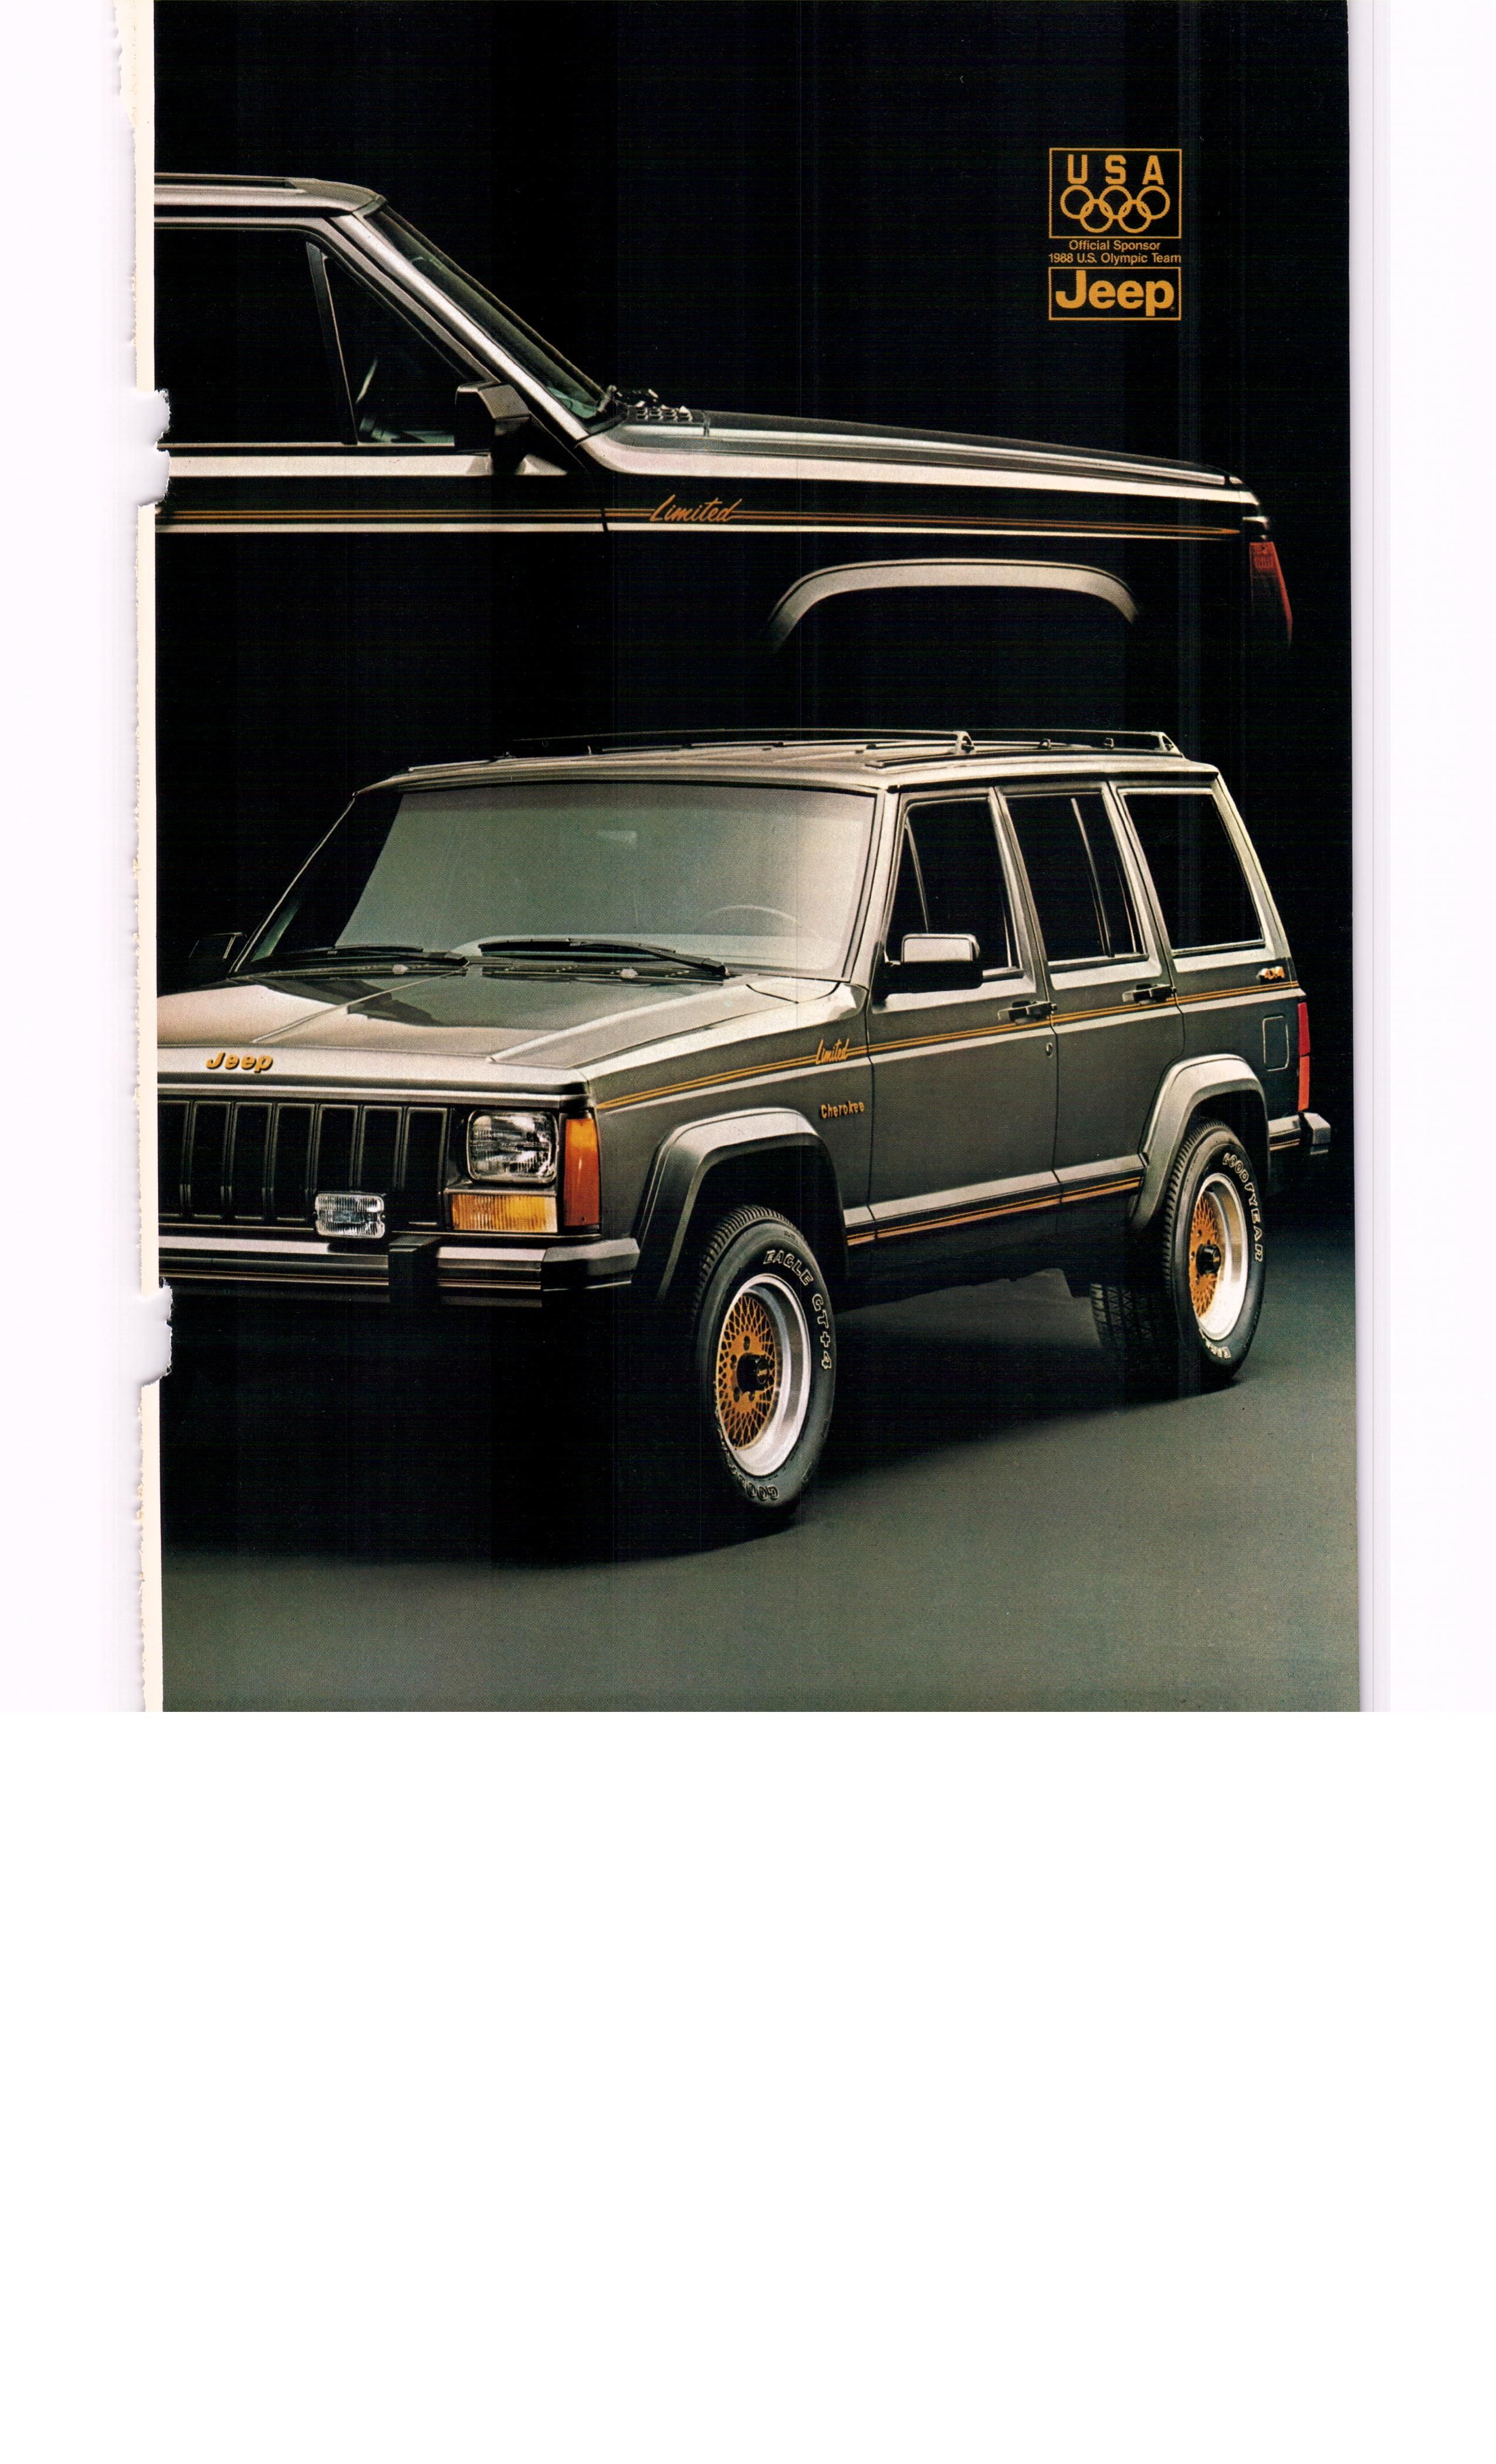 1987 Jeep Cherokee Limited Ad2 National Geographic August 1987